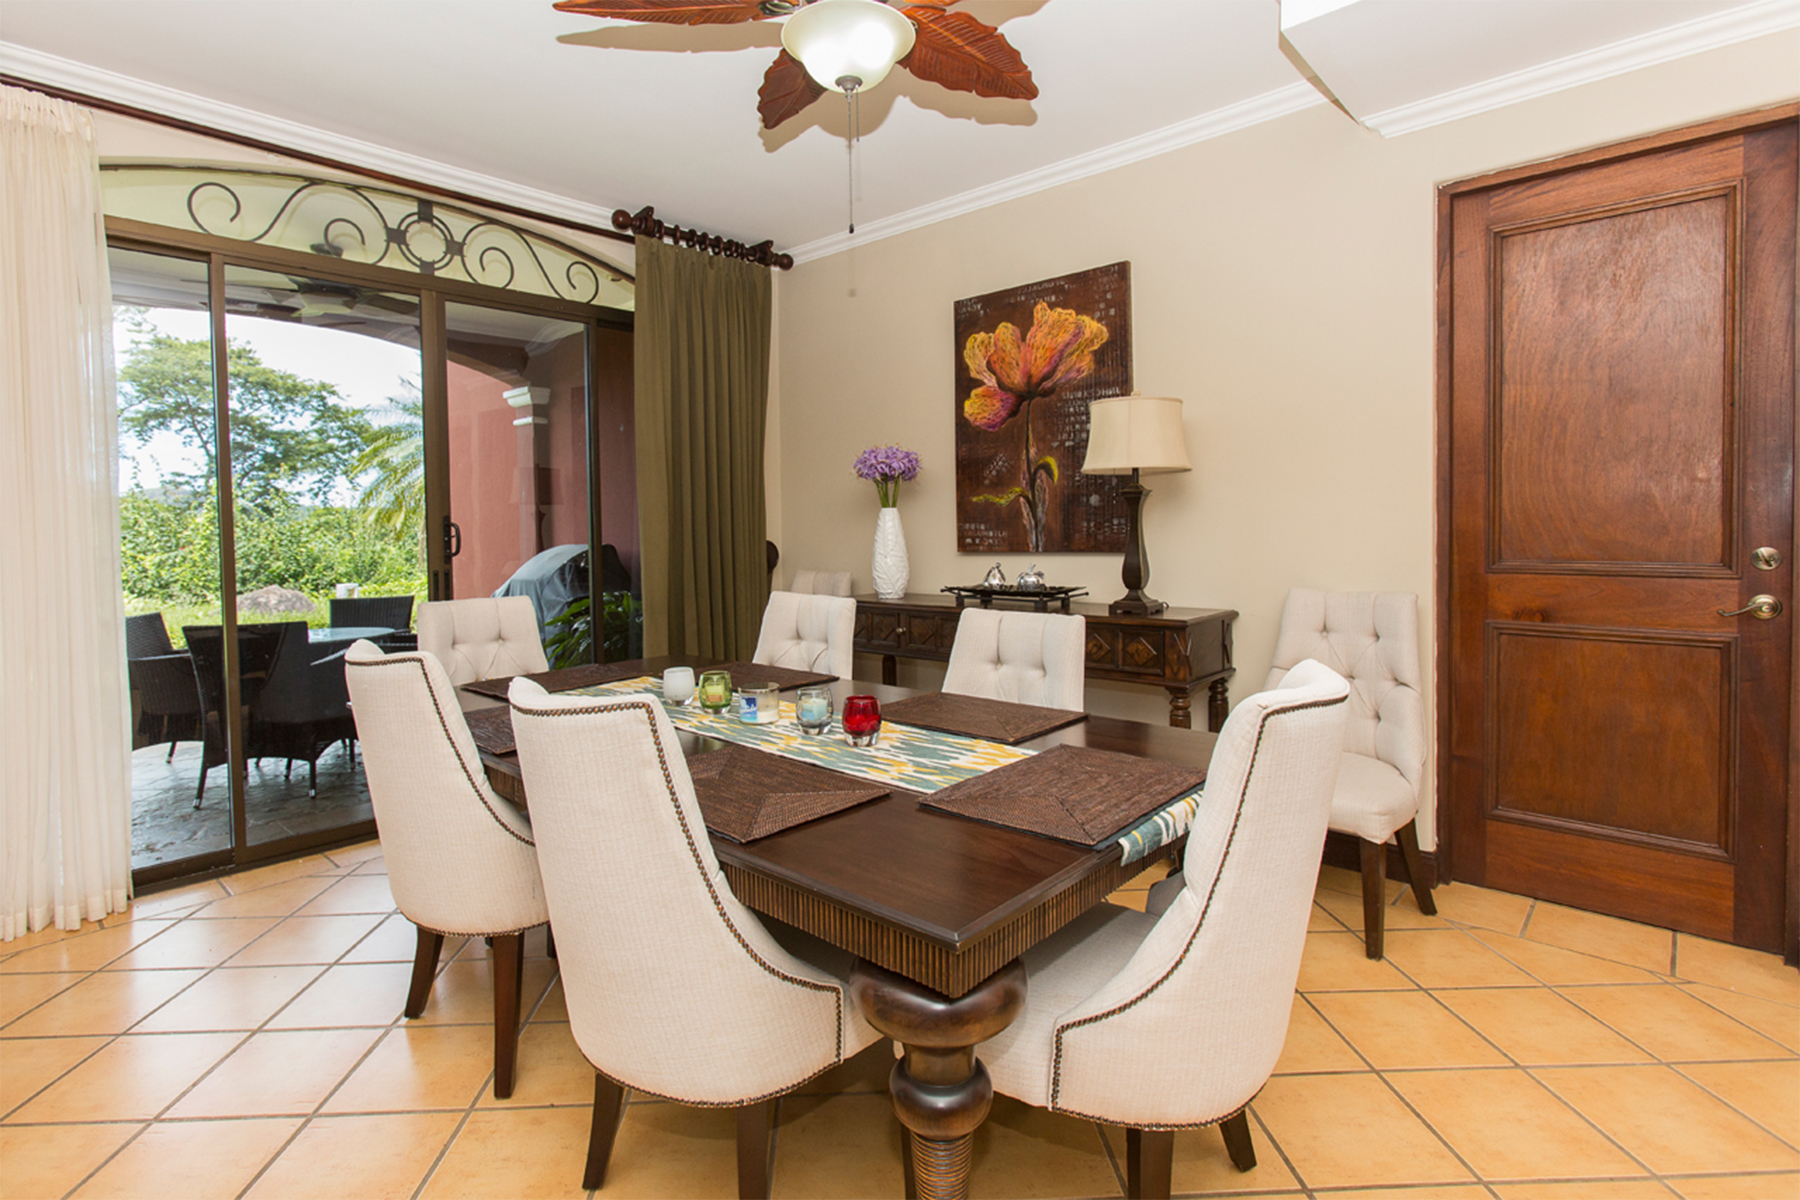 Condominium for Sale at Bougainvillea 8101 Reserva Conchal, Costa Rica